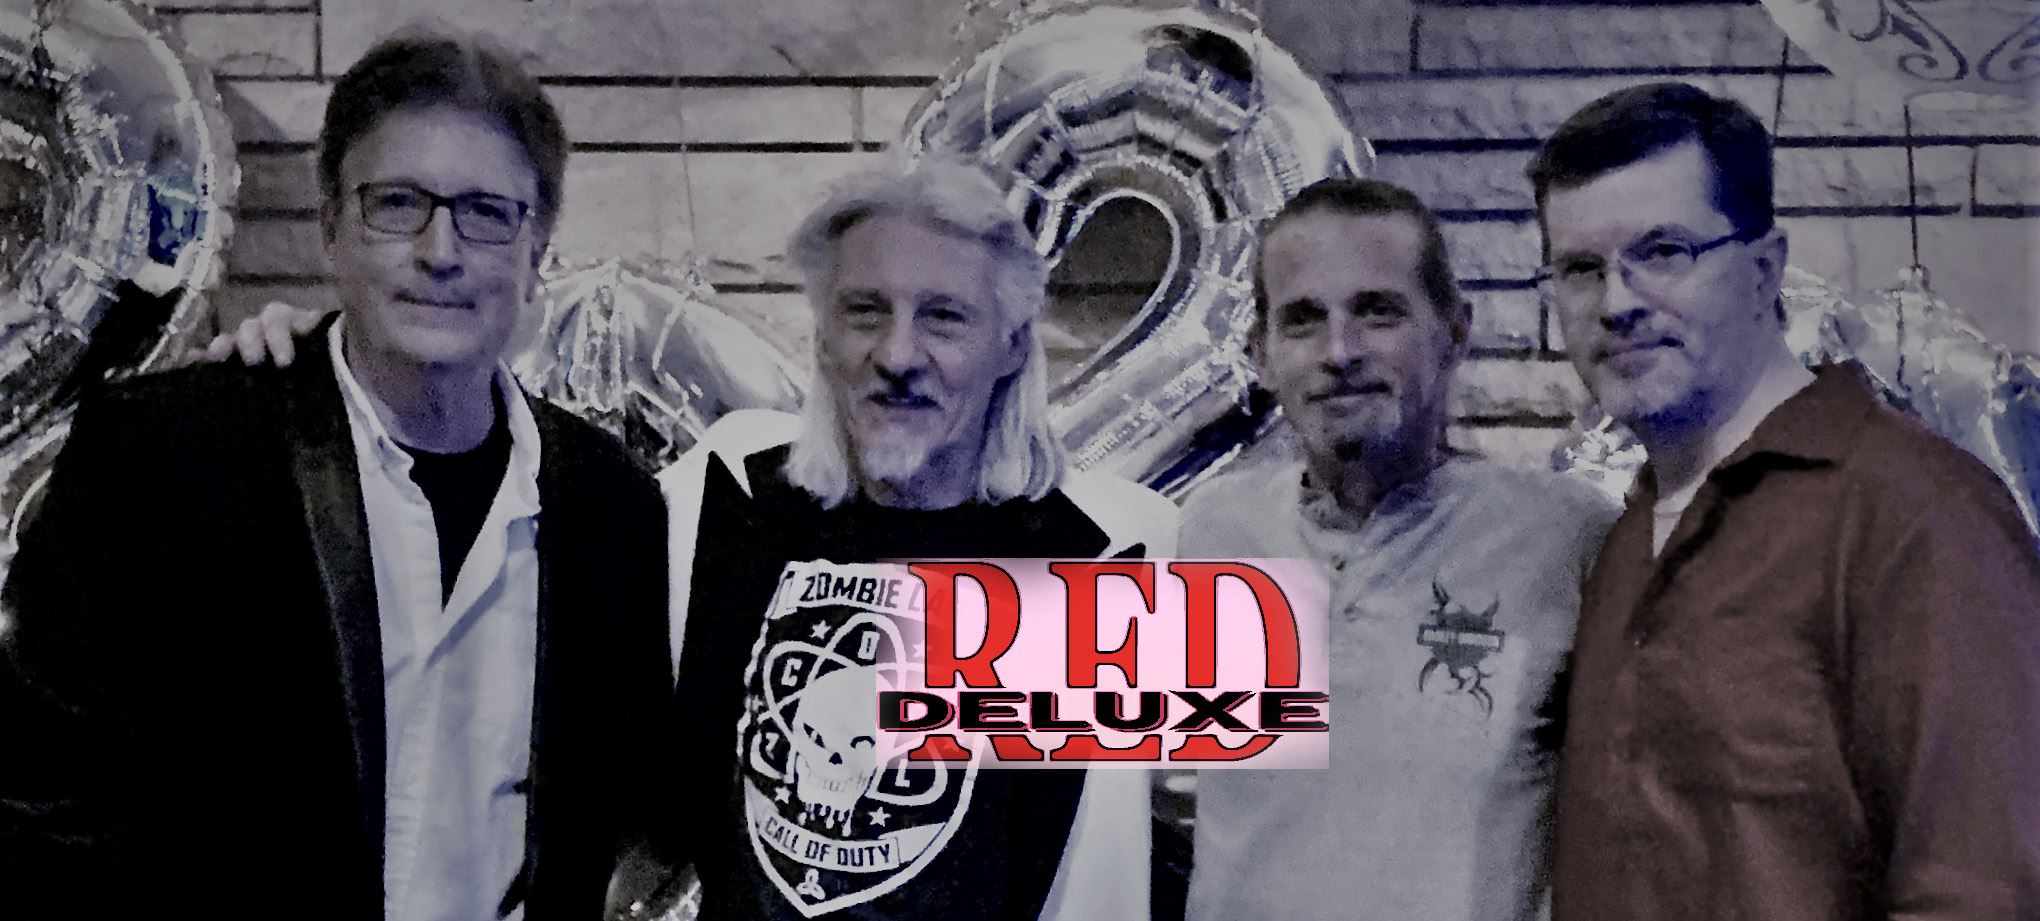 Red Deluxe Band